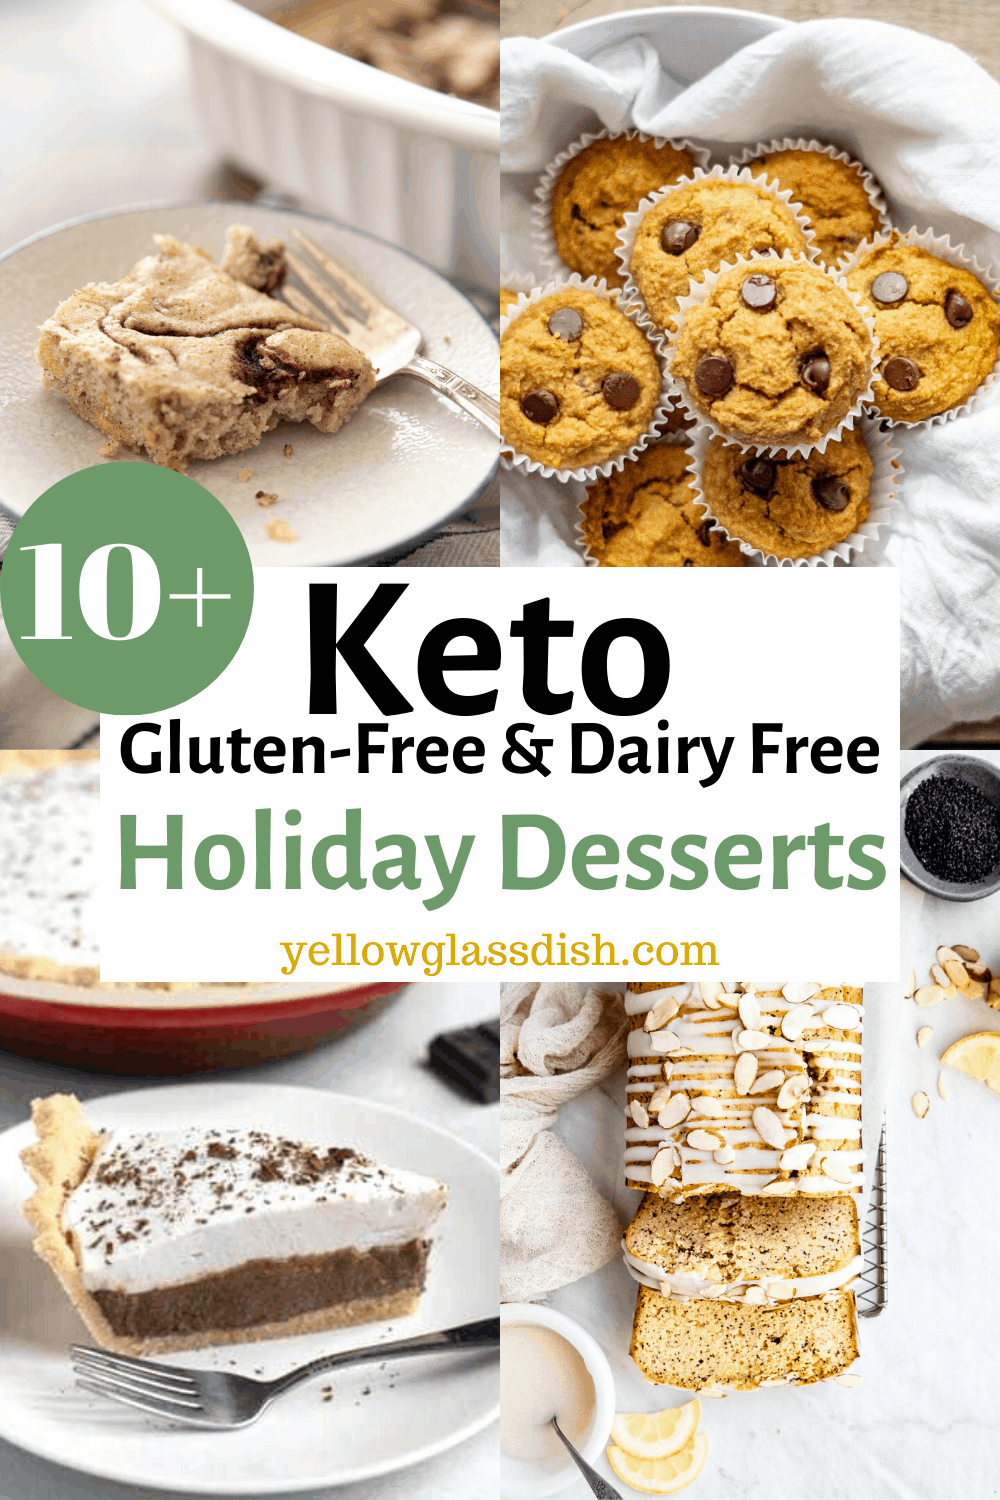 Low Carb Holiday Desserts – Gluten-free & Dairy-free